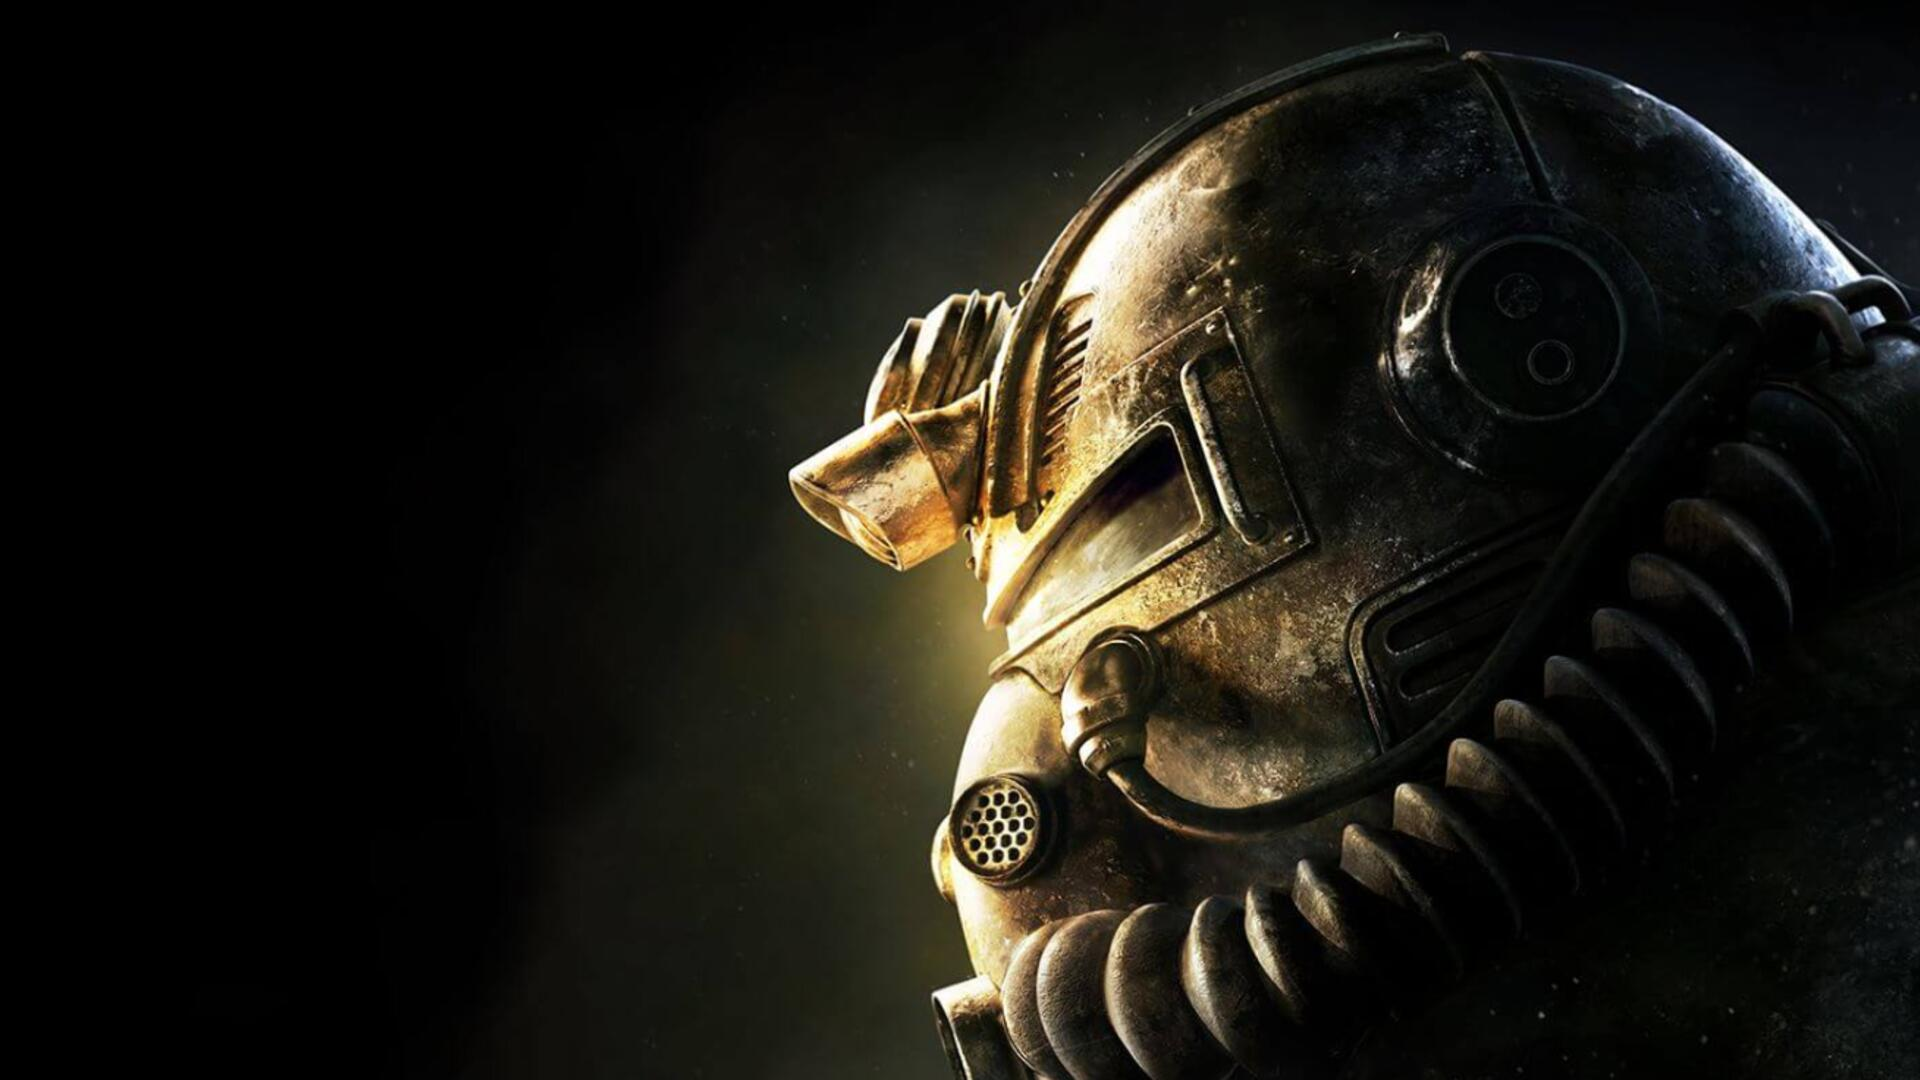 Todd Howard: Fallout 76 Doesn't Mean Bethesda is Abandoning Single-Player Experiences